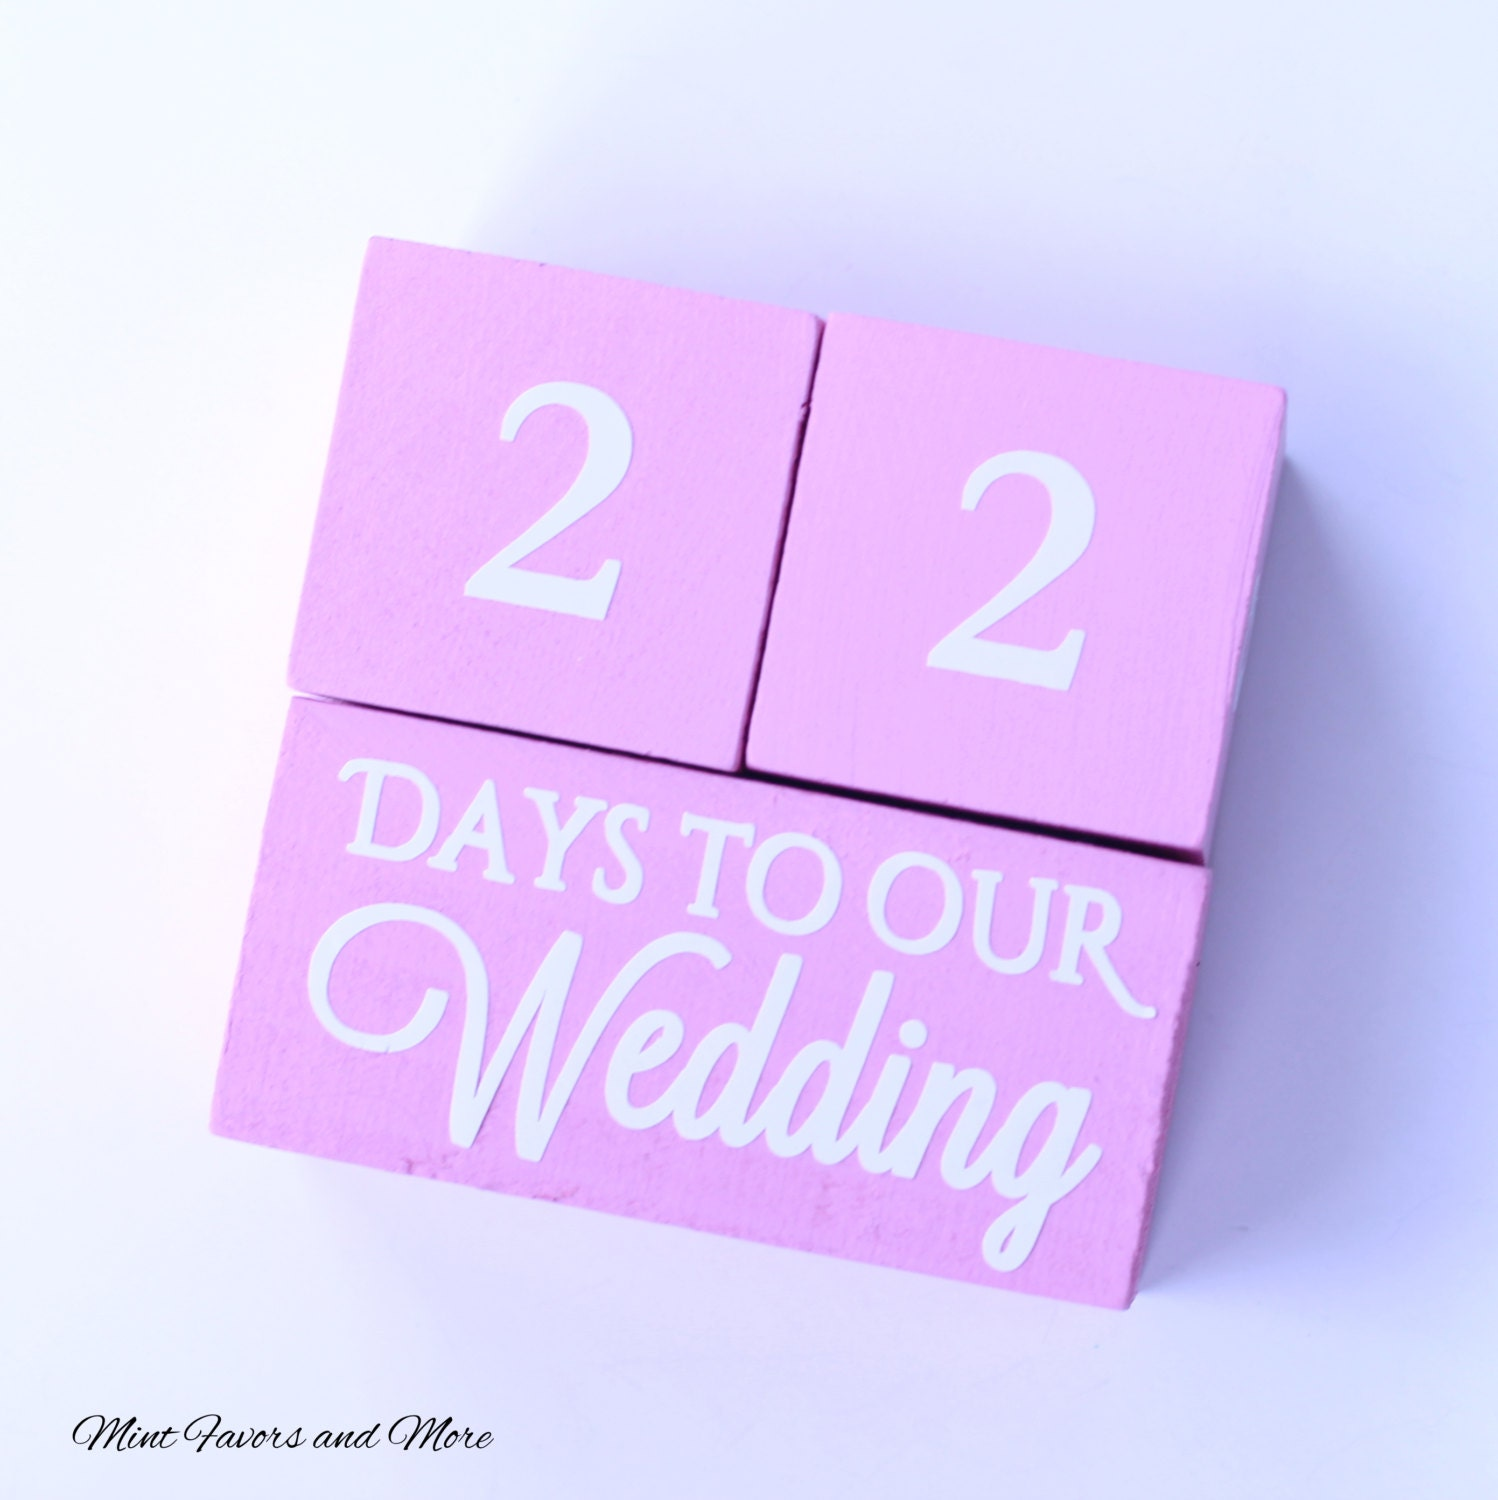 Wedding Countdown Gifts For Bride: Wedding Countdown Blocks Bridal Shower Gifts Engagement